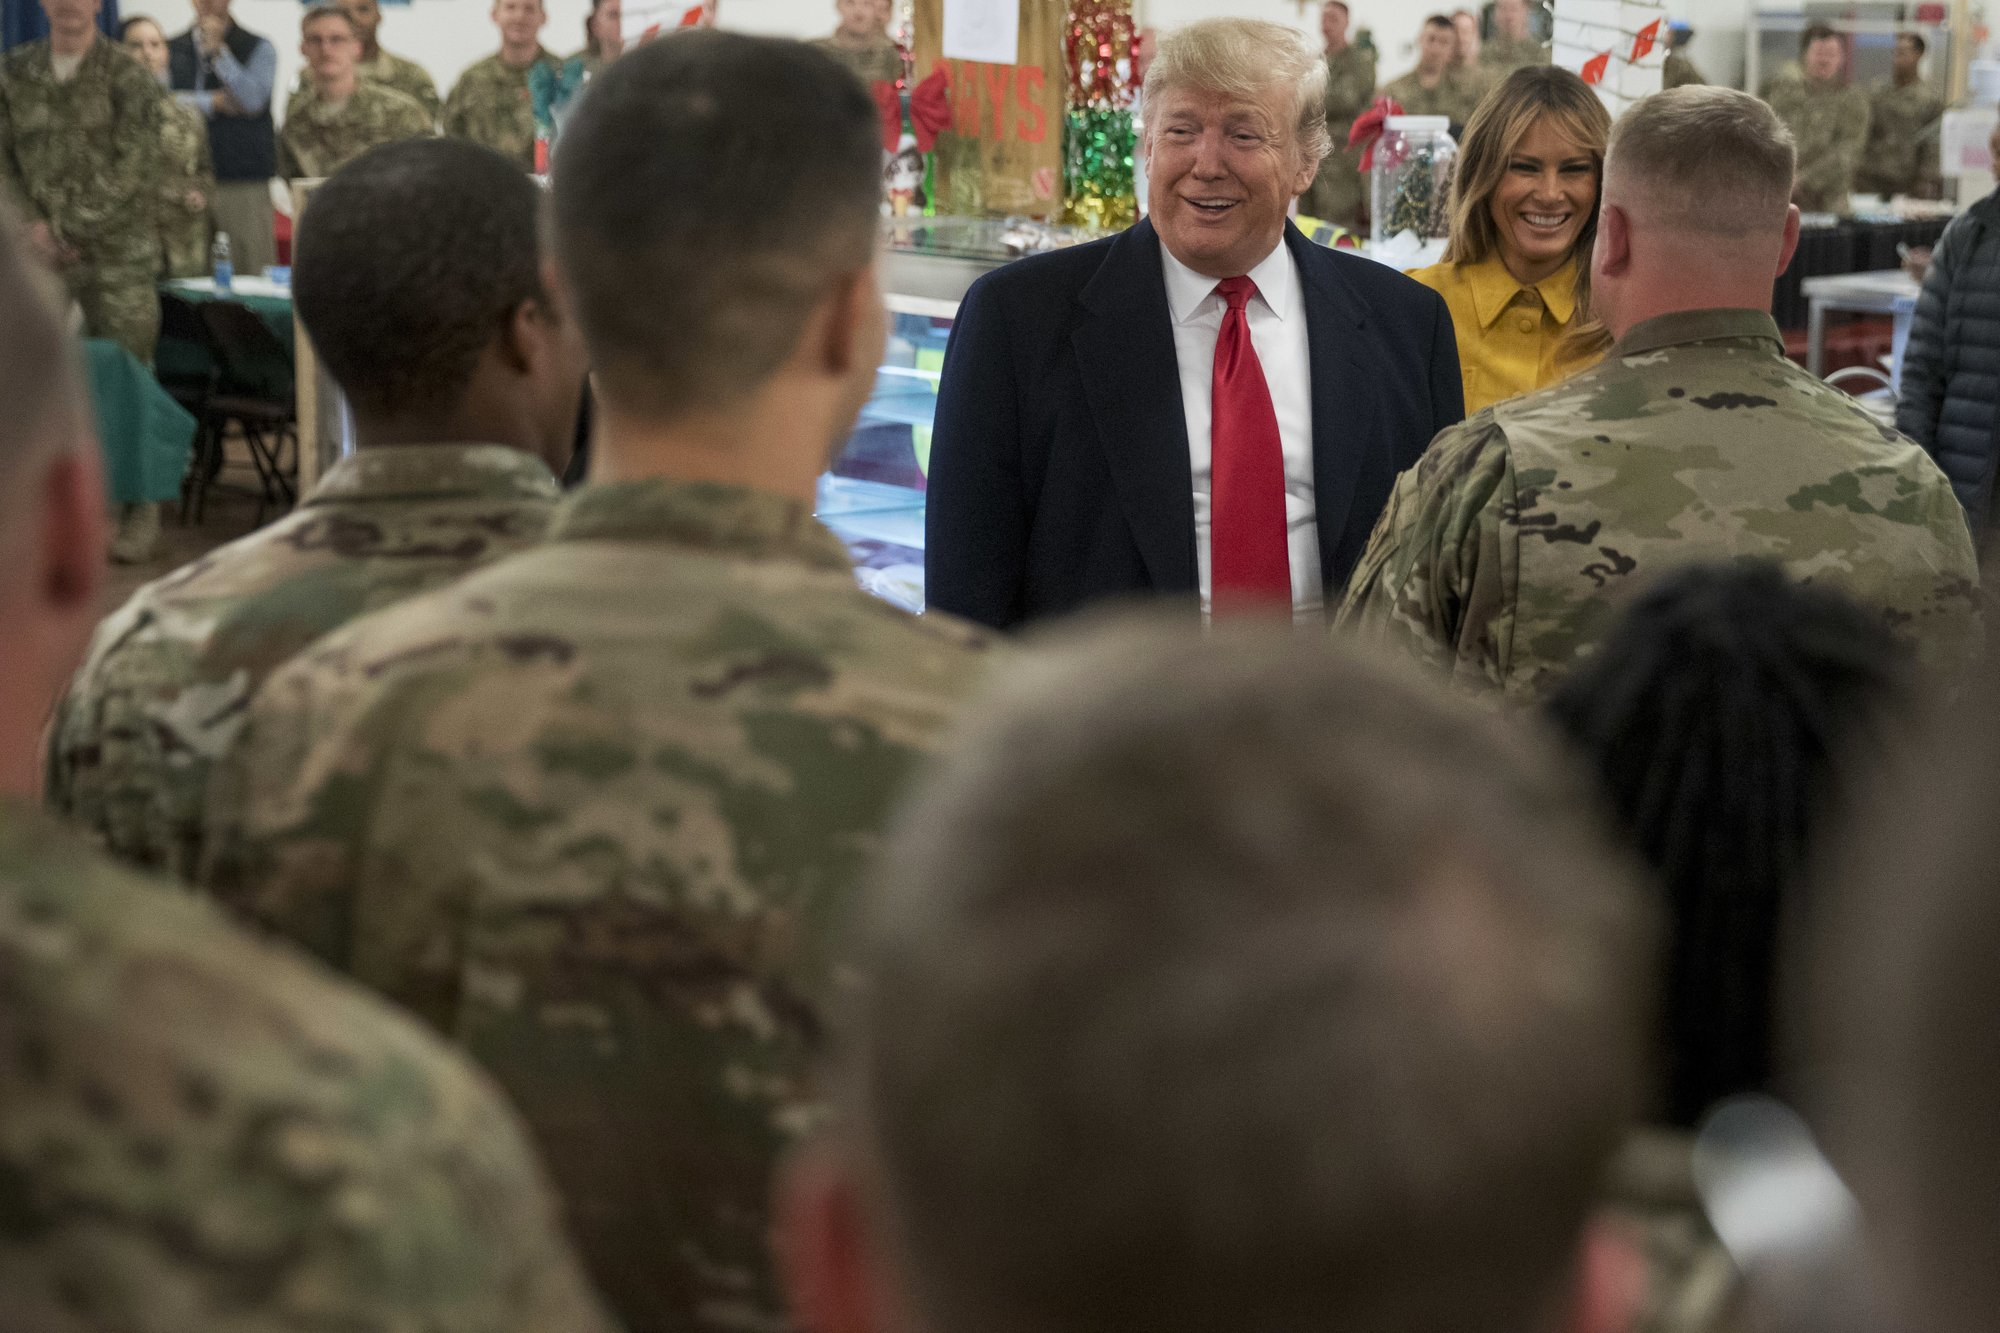 President Donald Trump and first lady Melania Trump visit with members of the military at a dining hall at Al Asad Air Base, Iraq, Wednesday, Dec. 26, 2018. (AP Photo/Andrew Harnik)